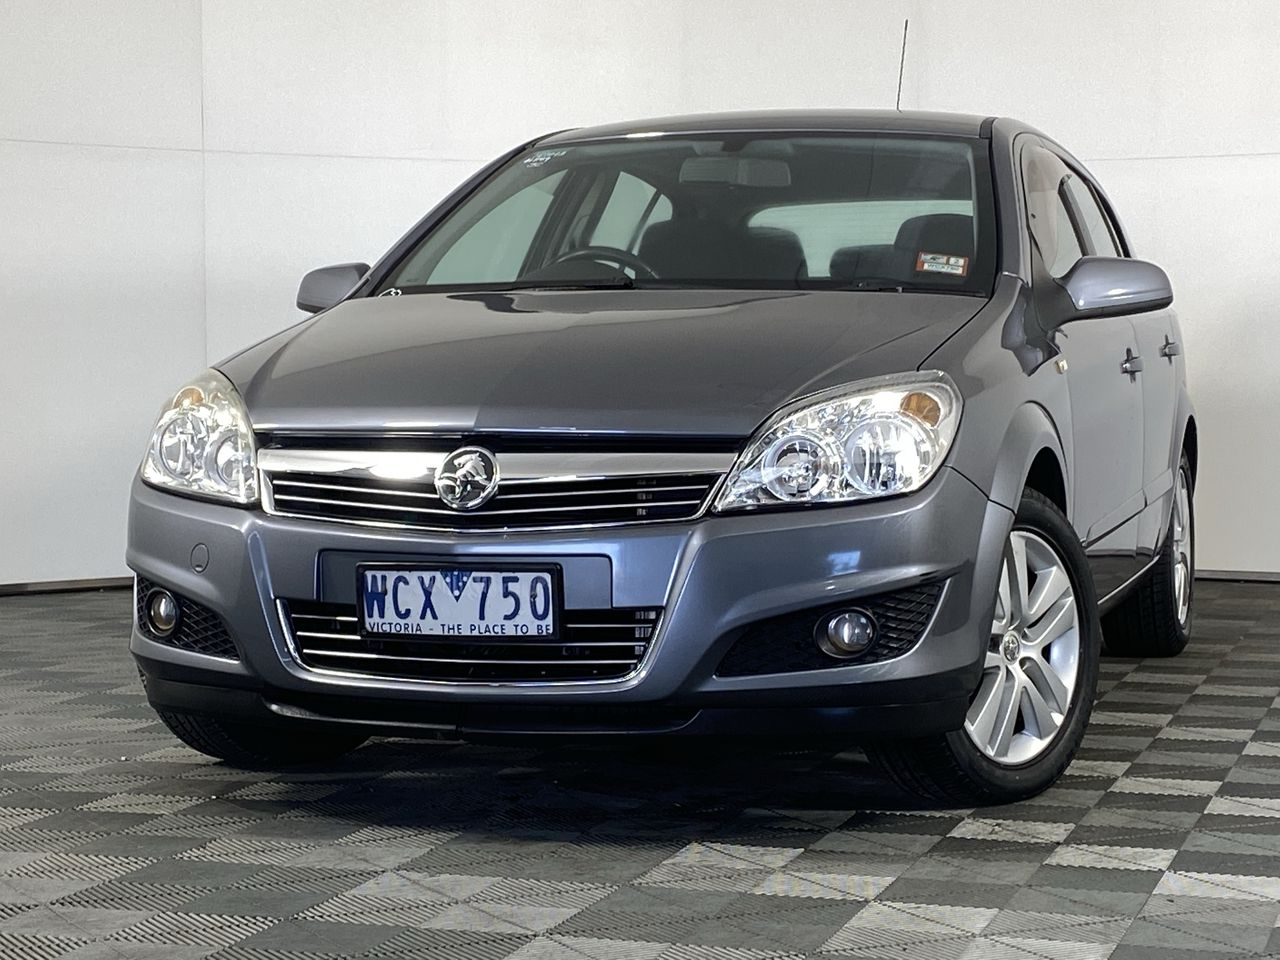 2008 Holden Astra CDX AH Automatic Hatchback